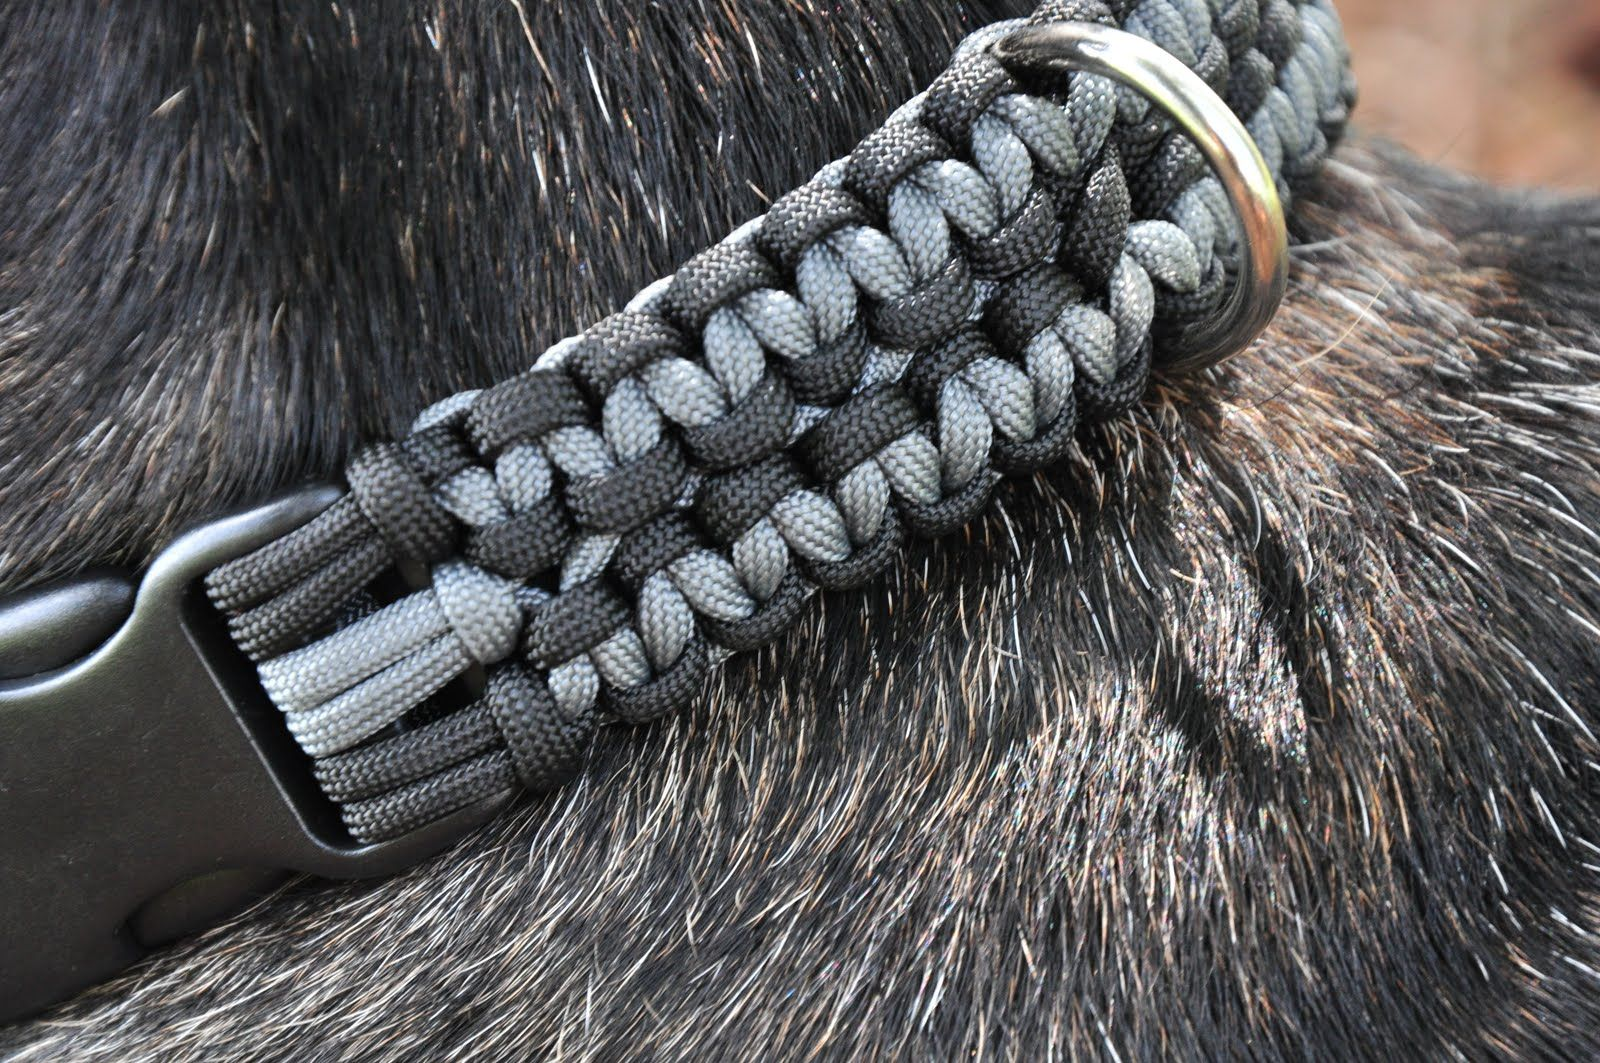 550 Paracord Dog Leash And Collars In Action Paracord Dog Leash